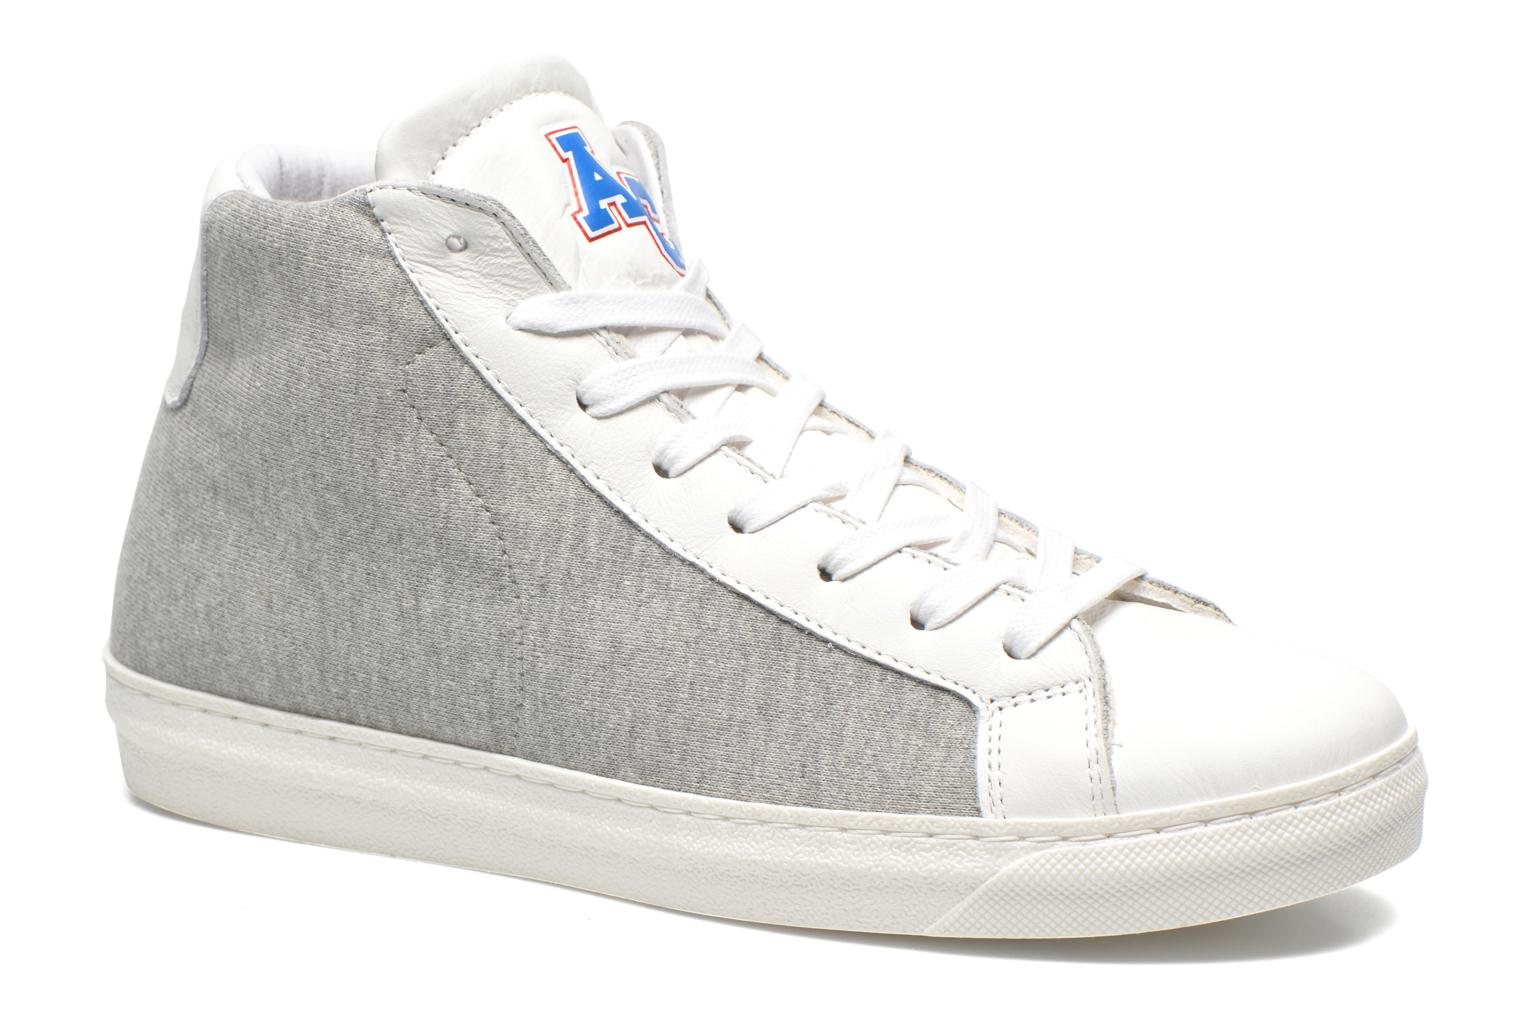 Sneakers Fleecy M by American College